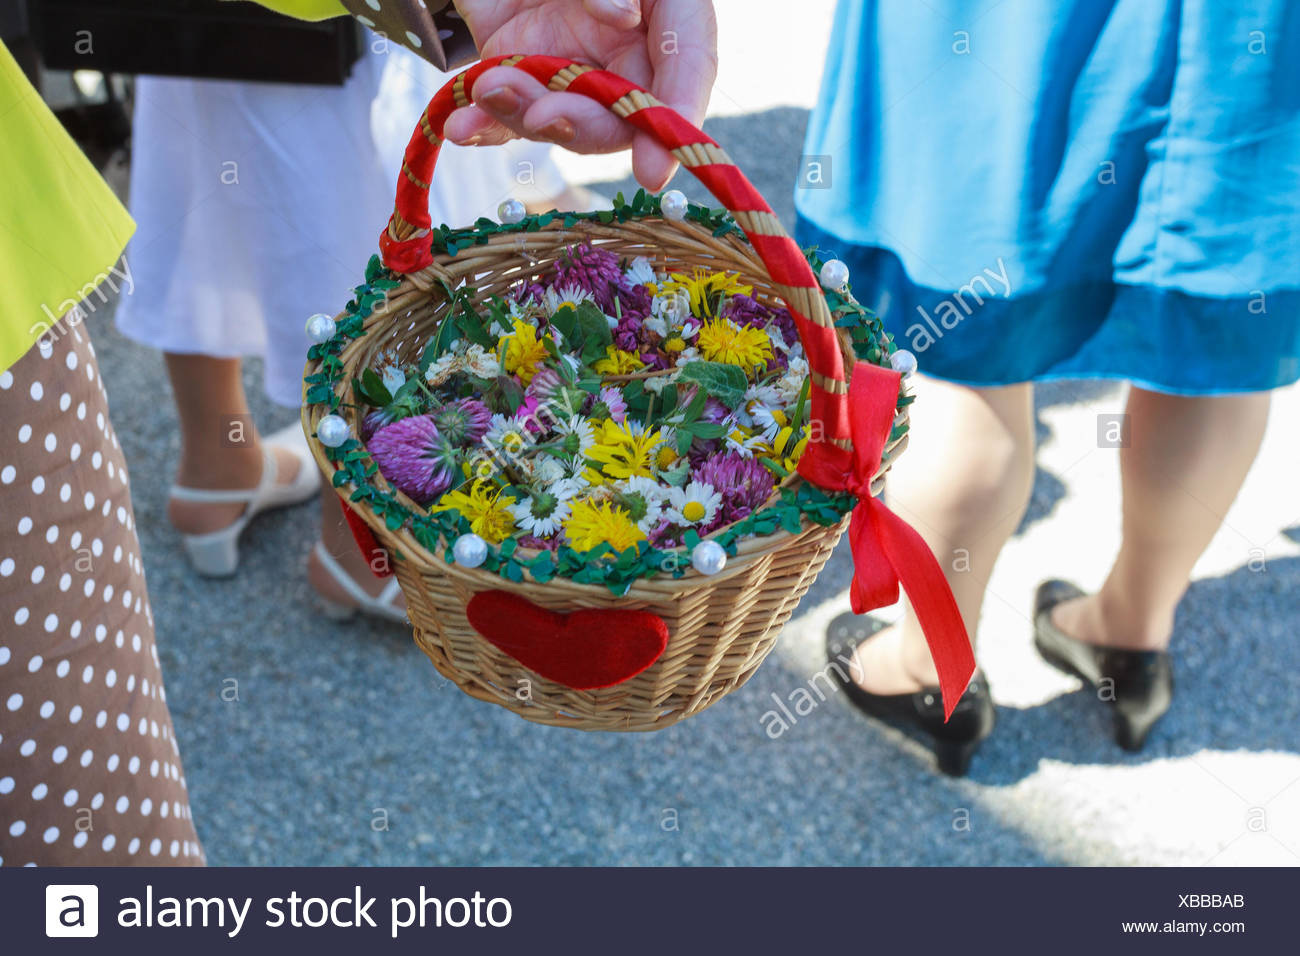 Flower basket at a marriage with guests - Stock Image